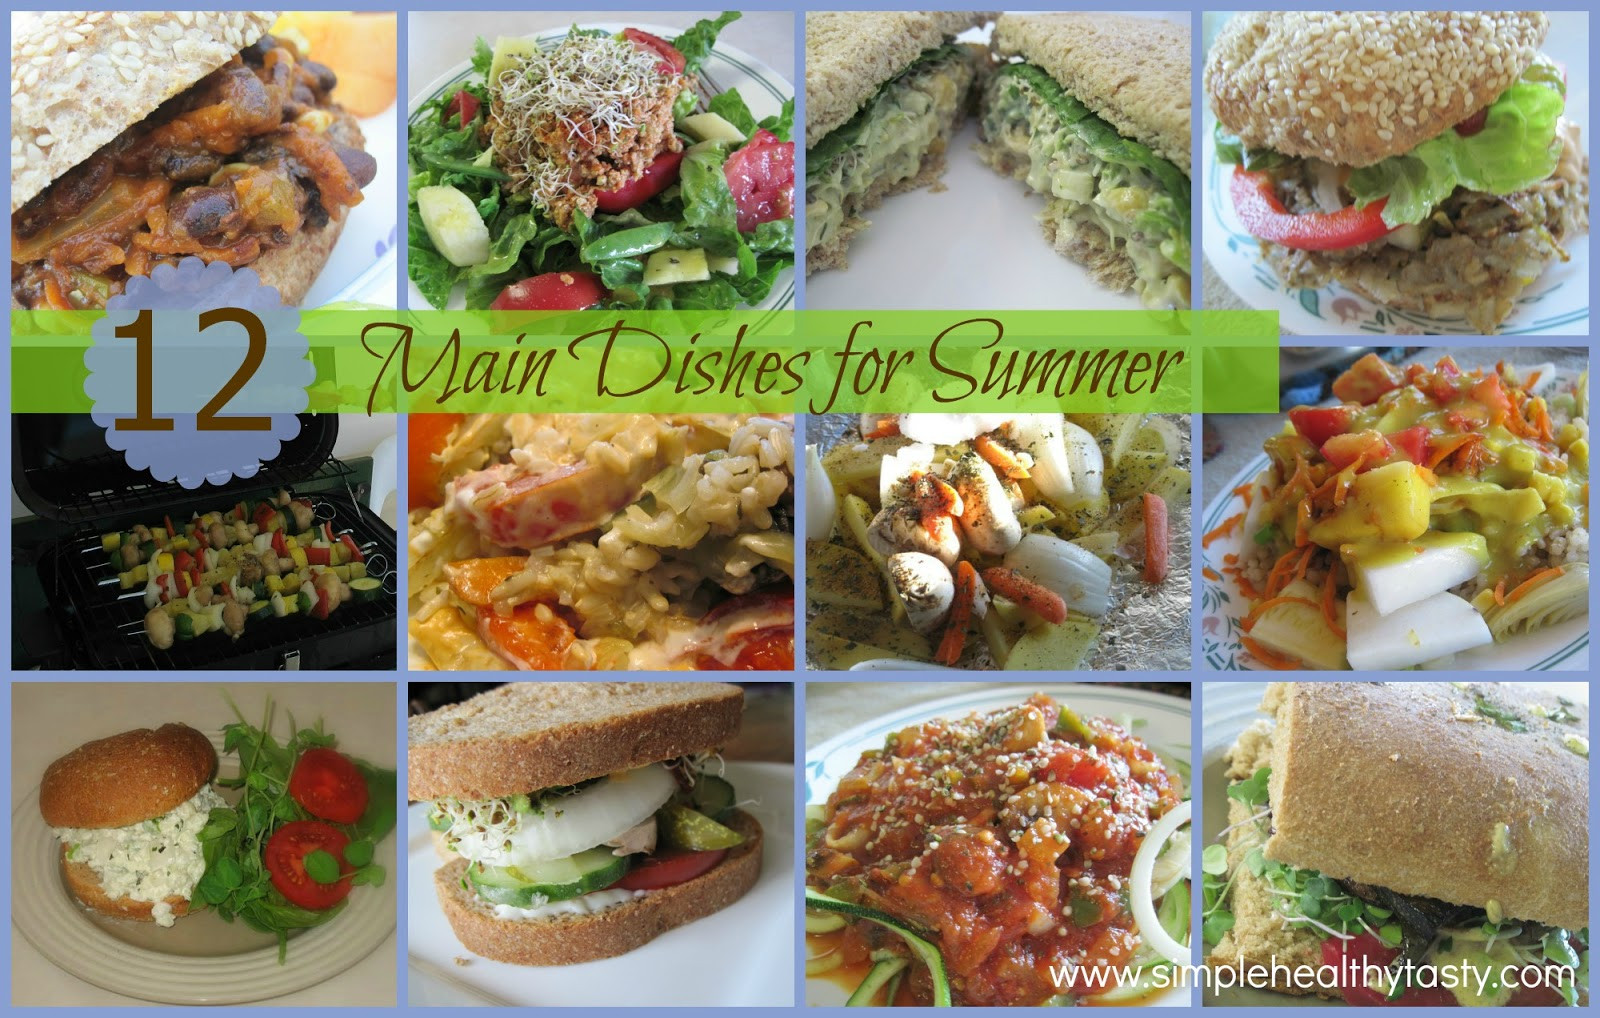 Summer Main Dishes  Simple Healthy Tasty 12 Main Dishes for Summer